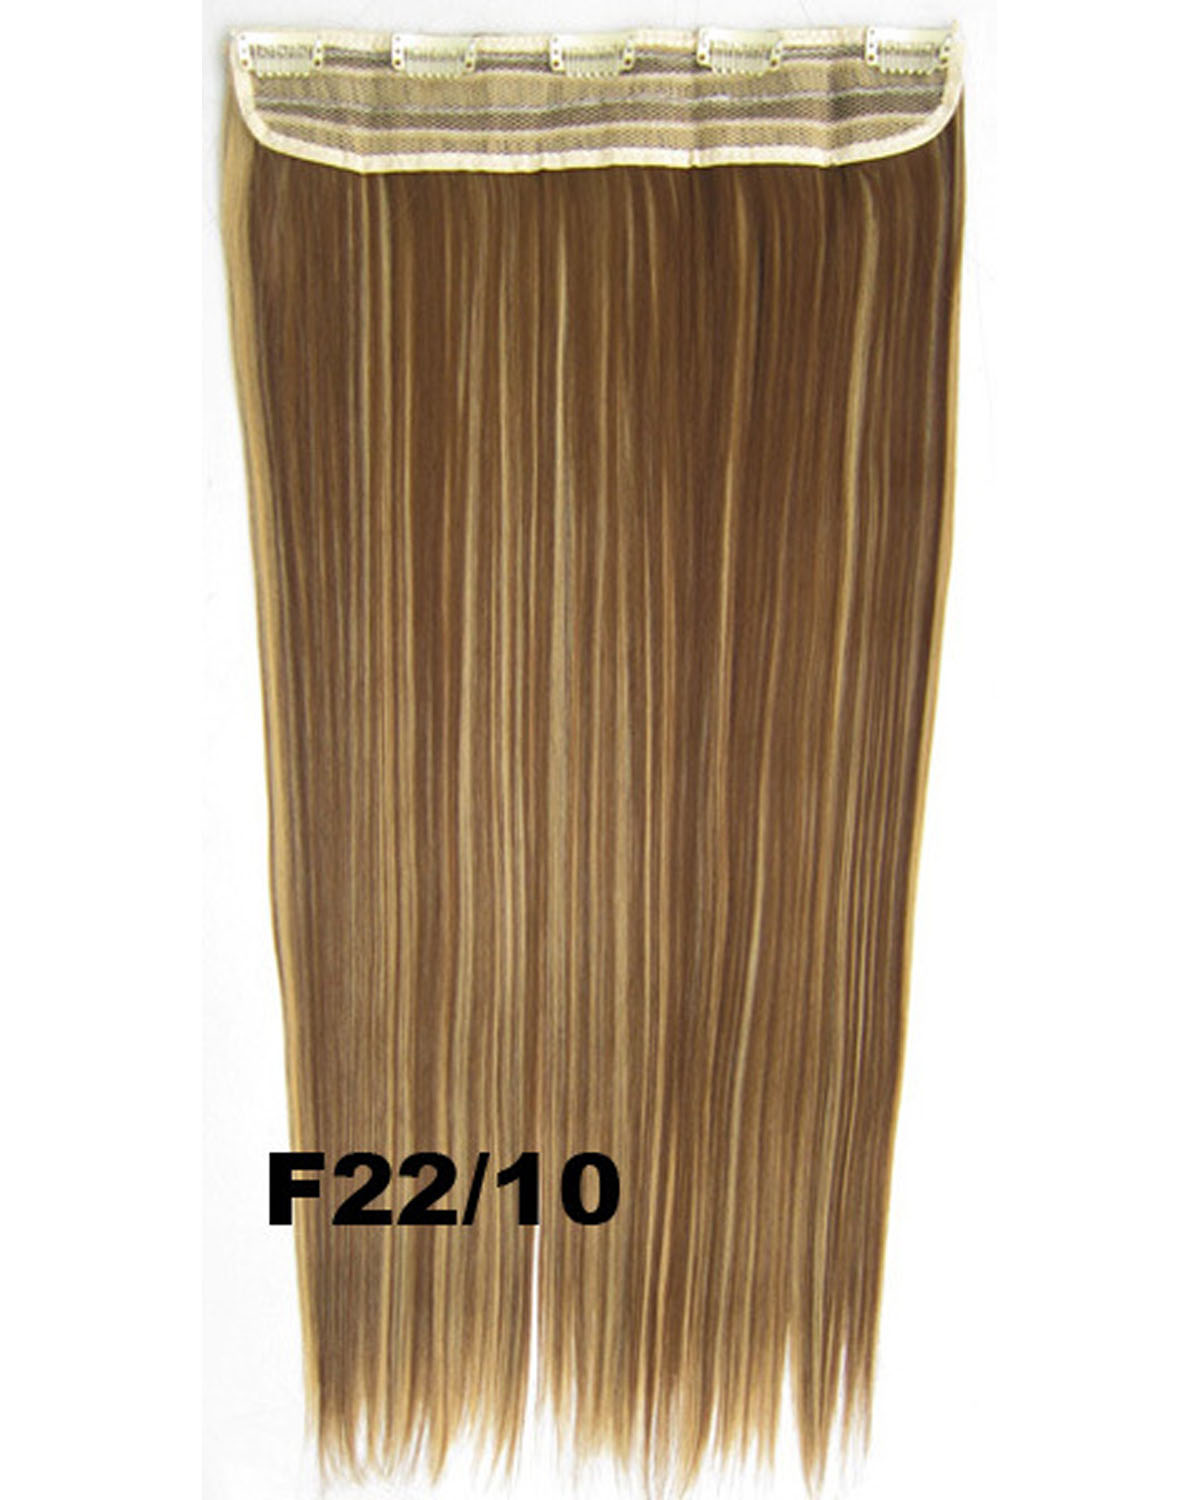 24 Inch Female High-class Long and Straight Hot-Sale One Piece 5 Clips Clip in Synthetic Hair Extension F22/10